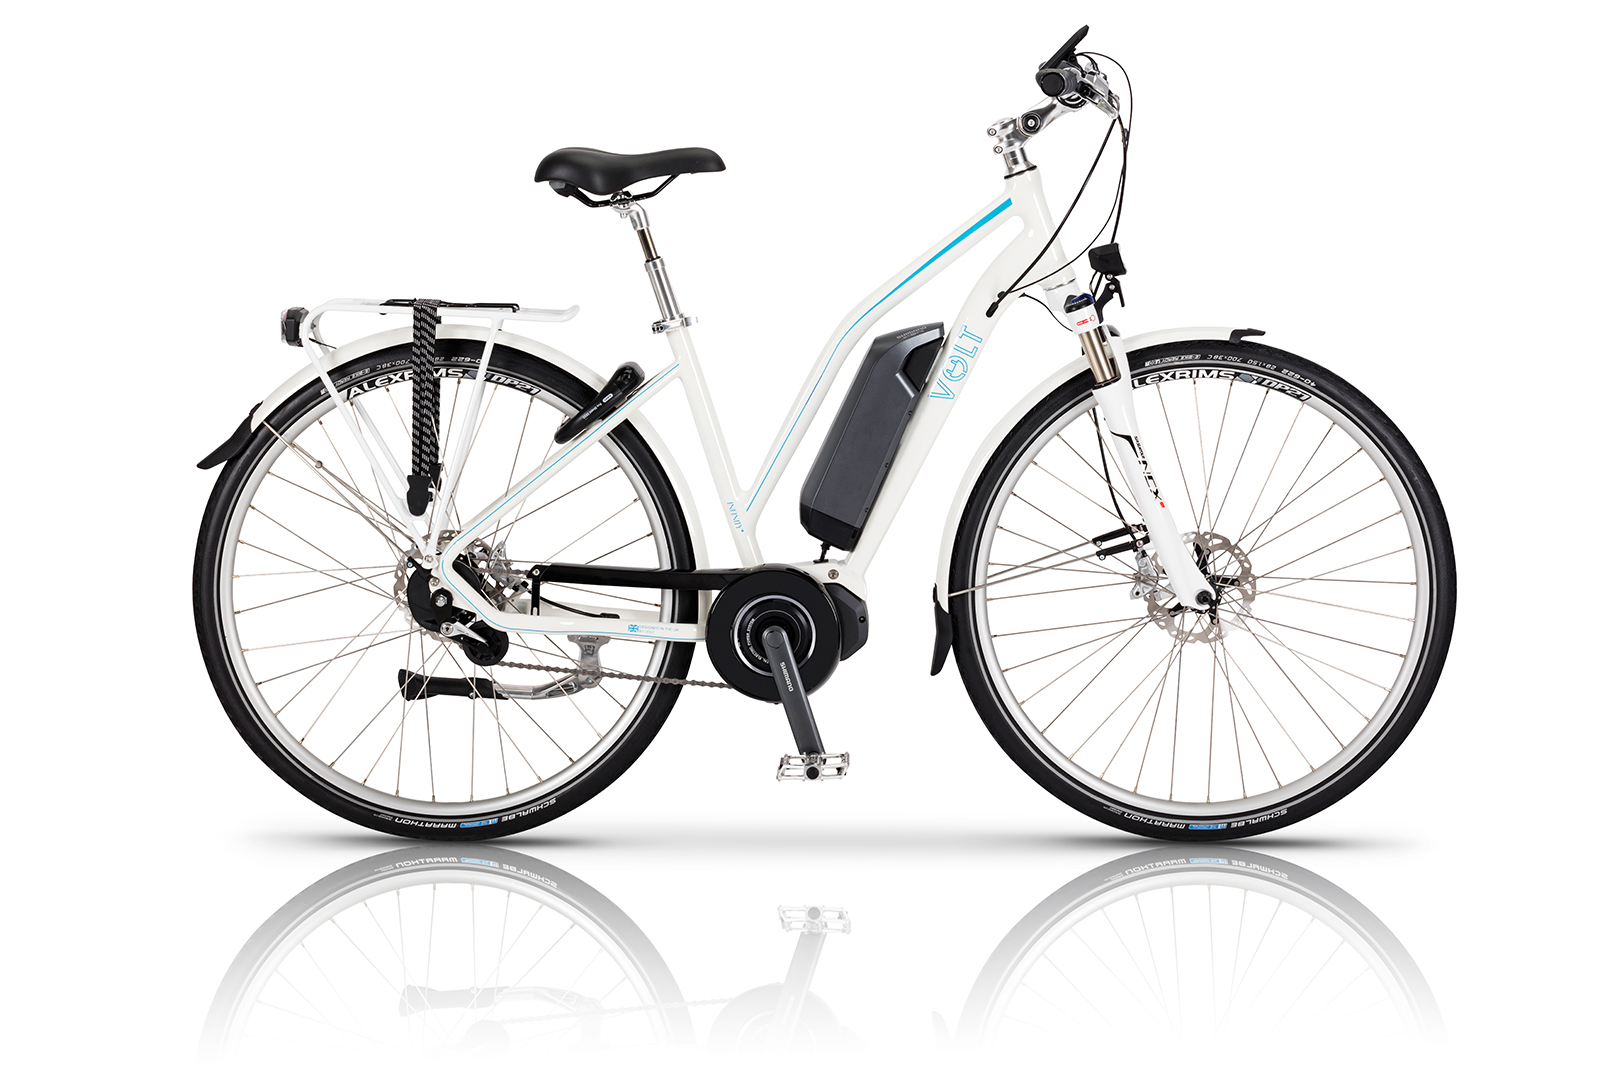 Infinity LS Shimano STEPS e-bike from VOLT™